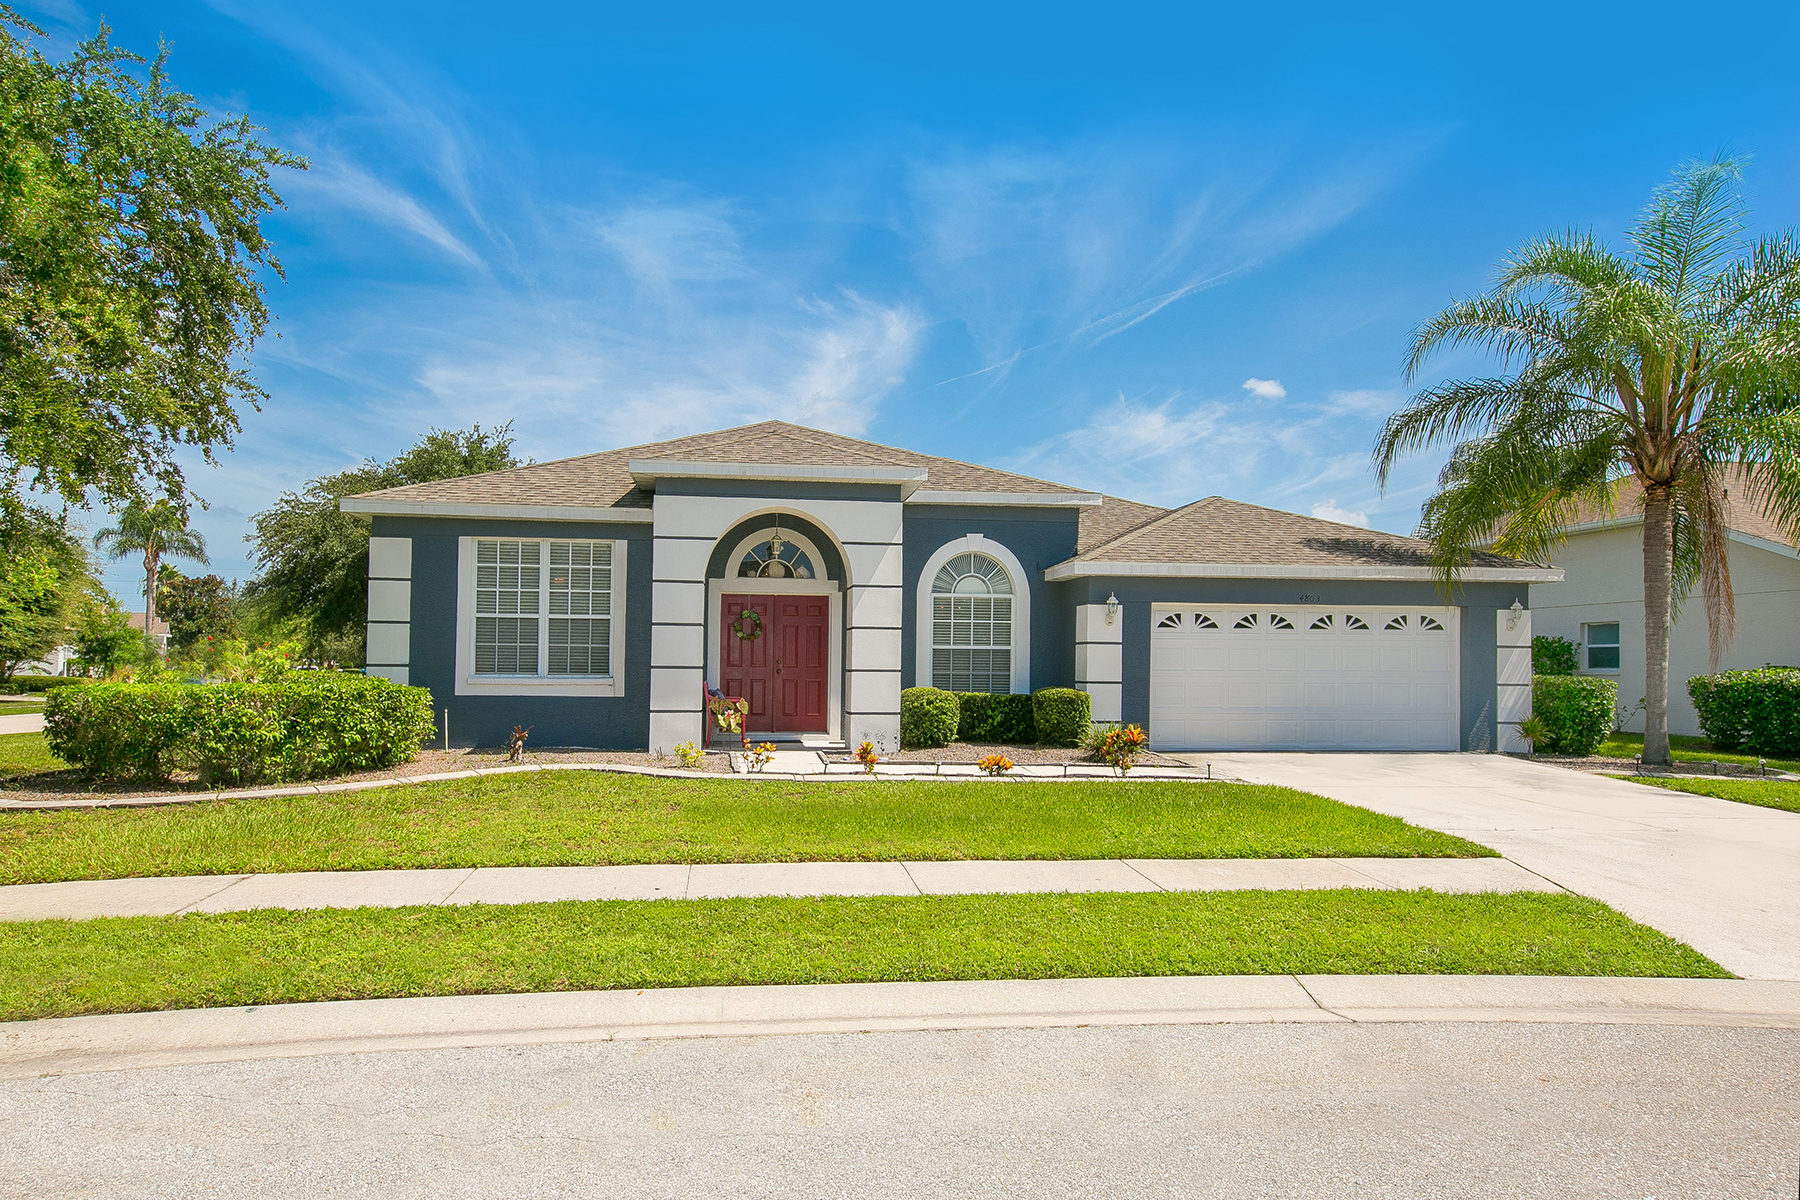 Single Family Home for Sale at SABAL HARBOUR 4803 Turtle Bay Terr Bradenton, Florida, 34203 United States